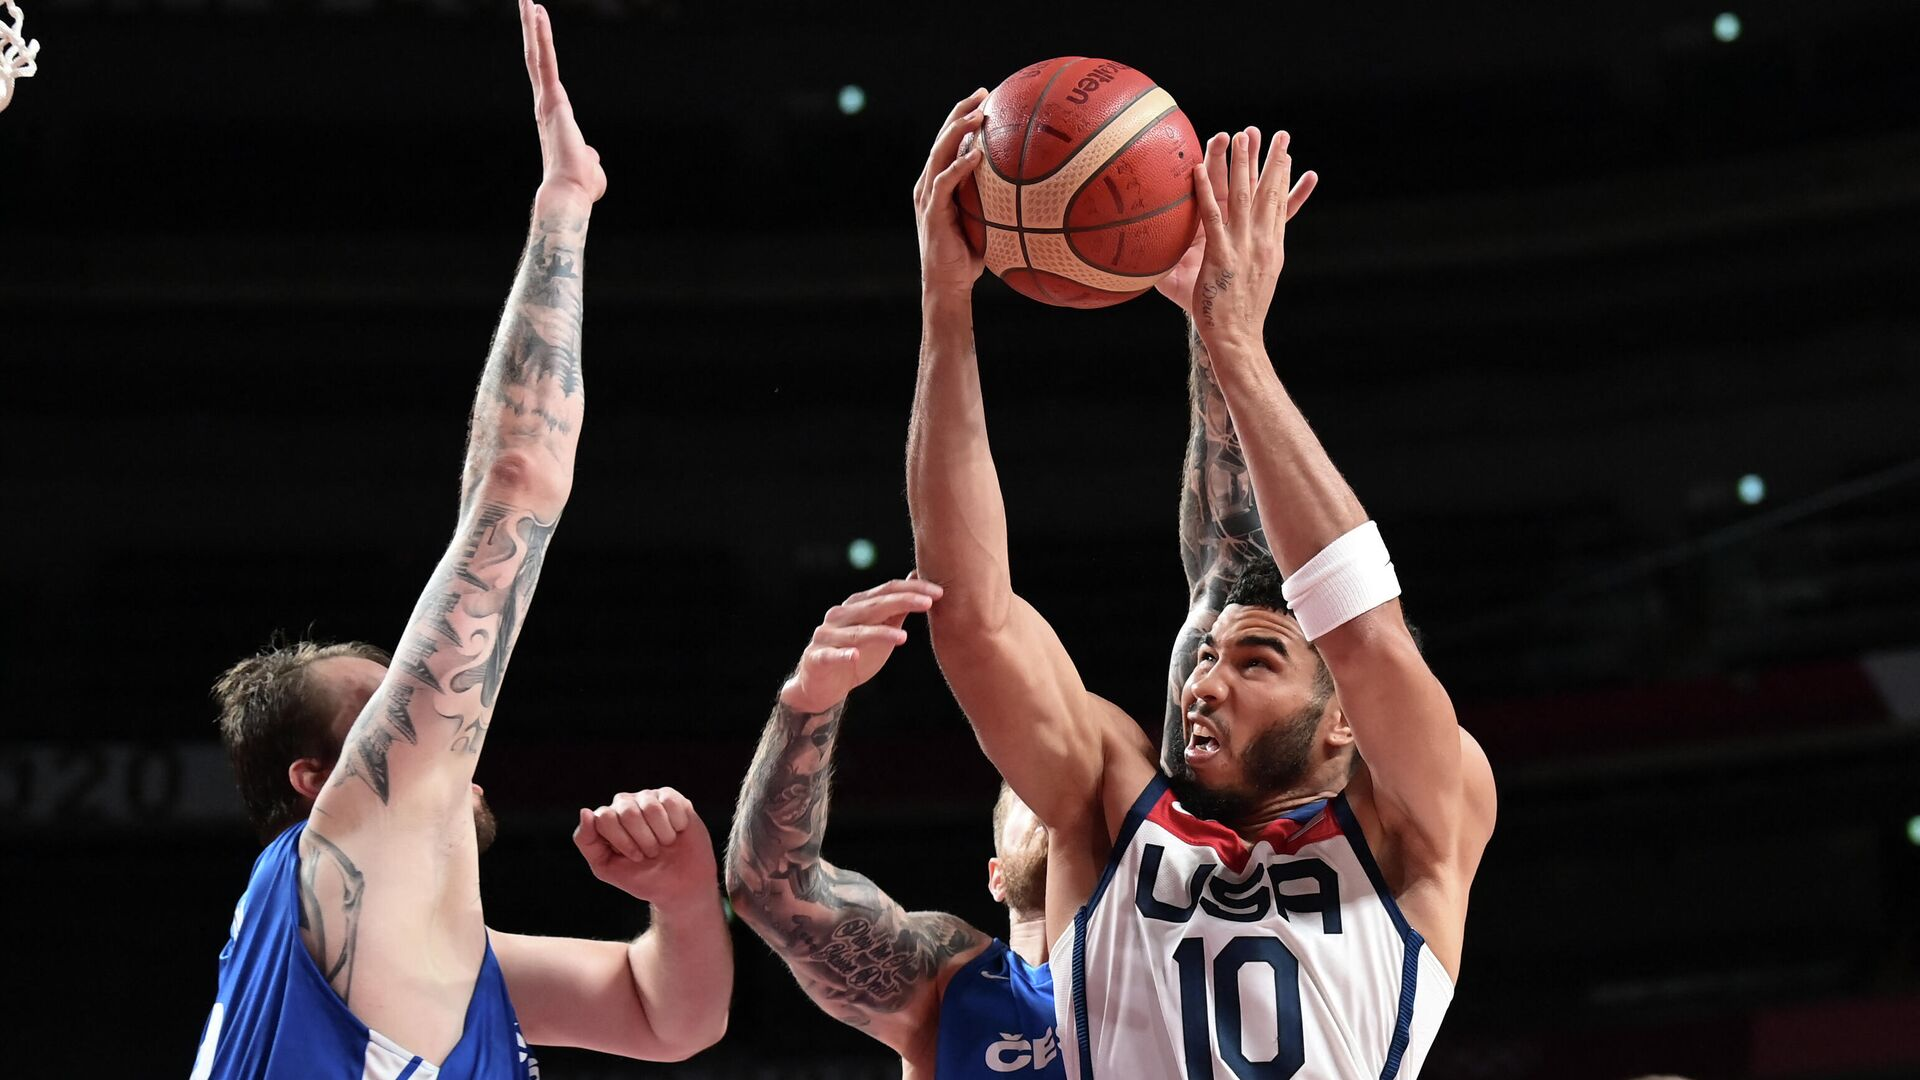 USA's Jayson Tatum (R) goes to the basket past Czech Republic's Ondrej Balvin (L) in the men's preliminary round group A basketball match between USA and Czech Republic during the Tokyo 2020 Olympic Games at the Saitama Super Arena in Saitama on July 31, 2021. (Photo by Aris MESSINIS / AFP) - РИА Новости, 1920, 31.07.2021